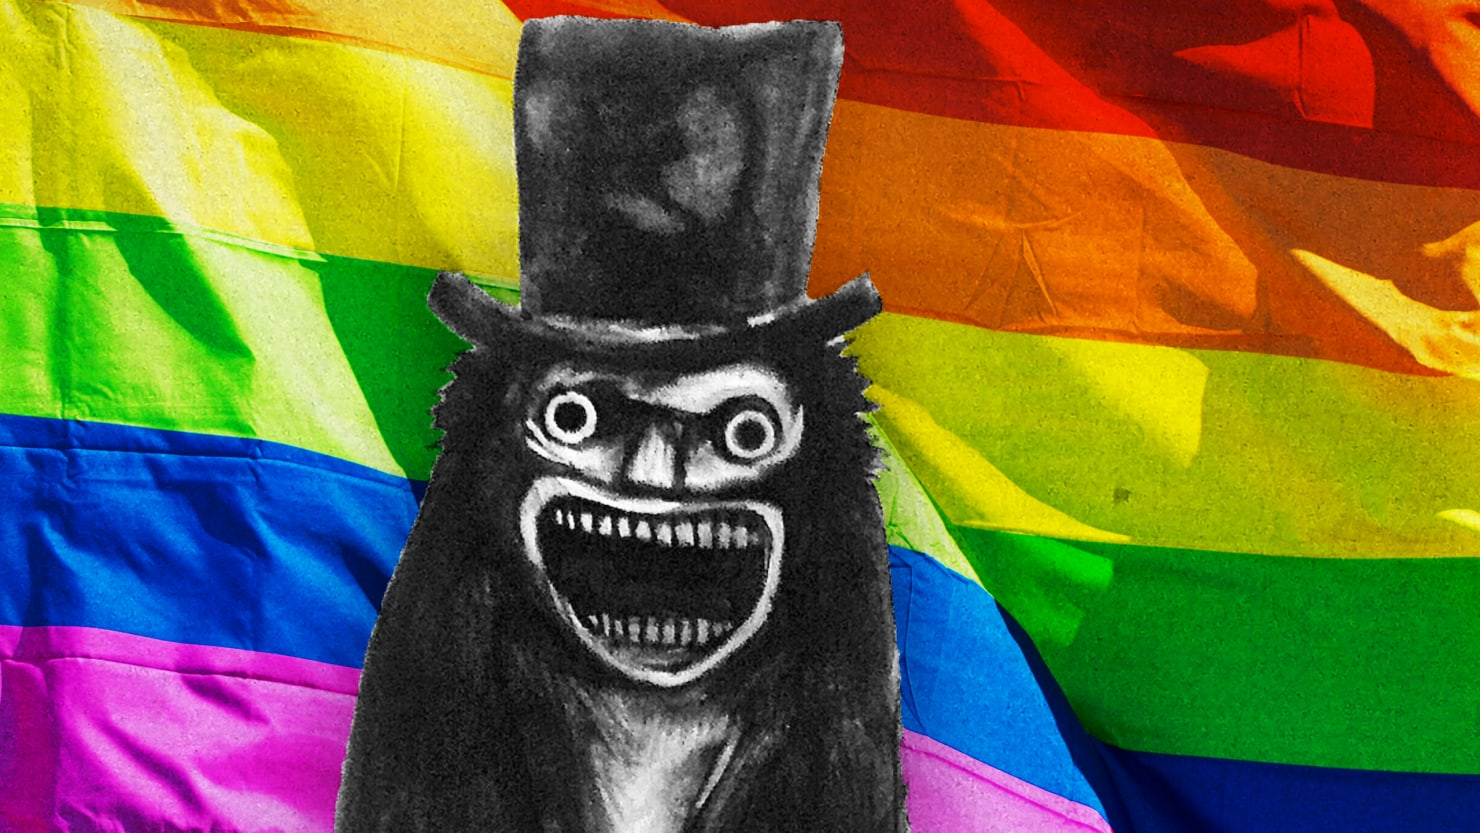 scene by scene this is what makes the babadook such an